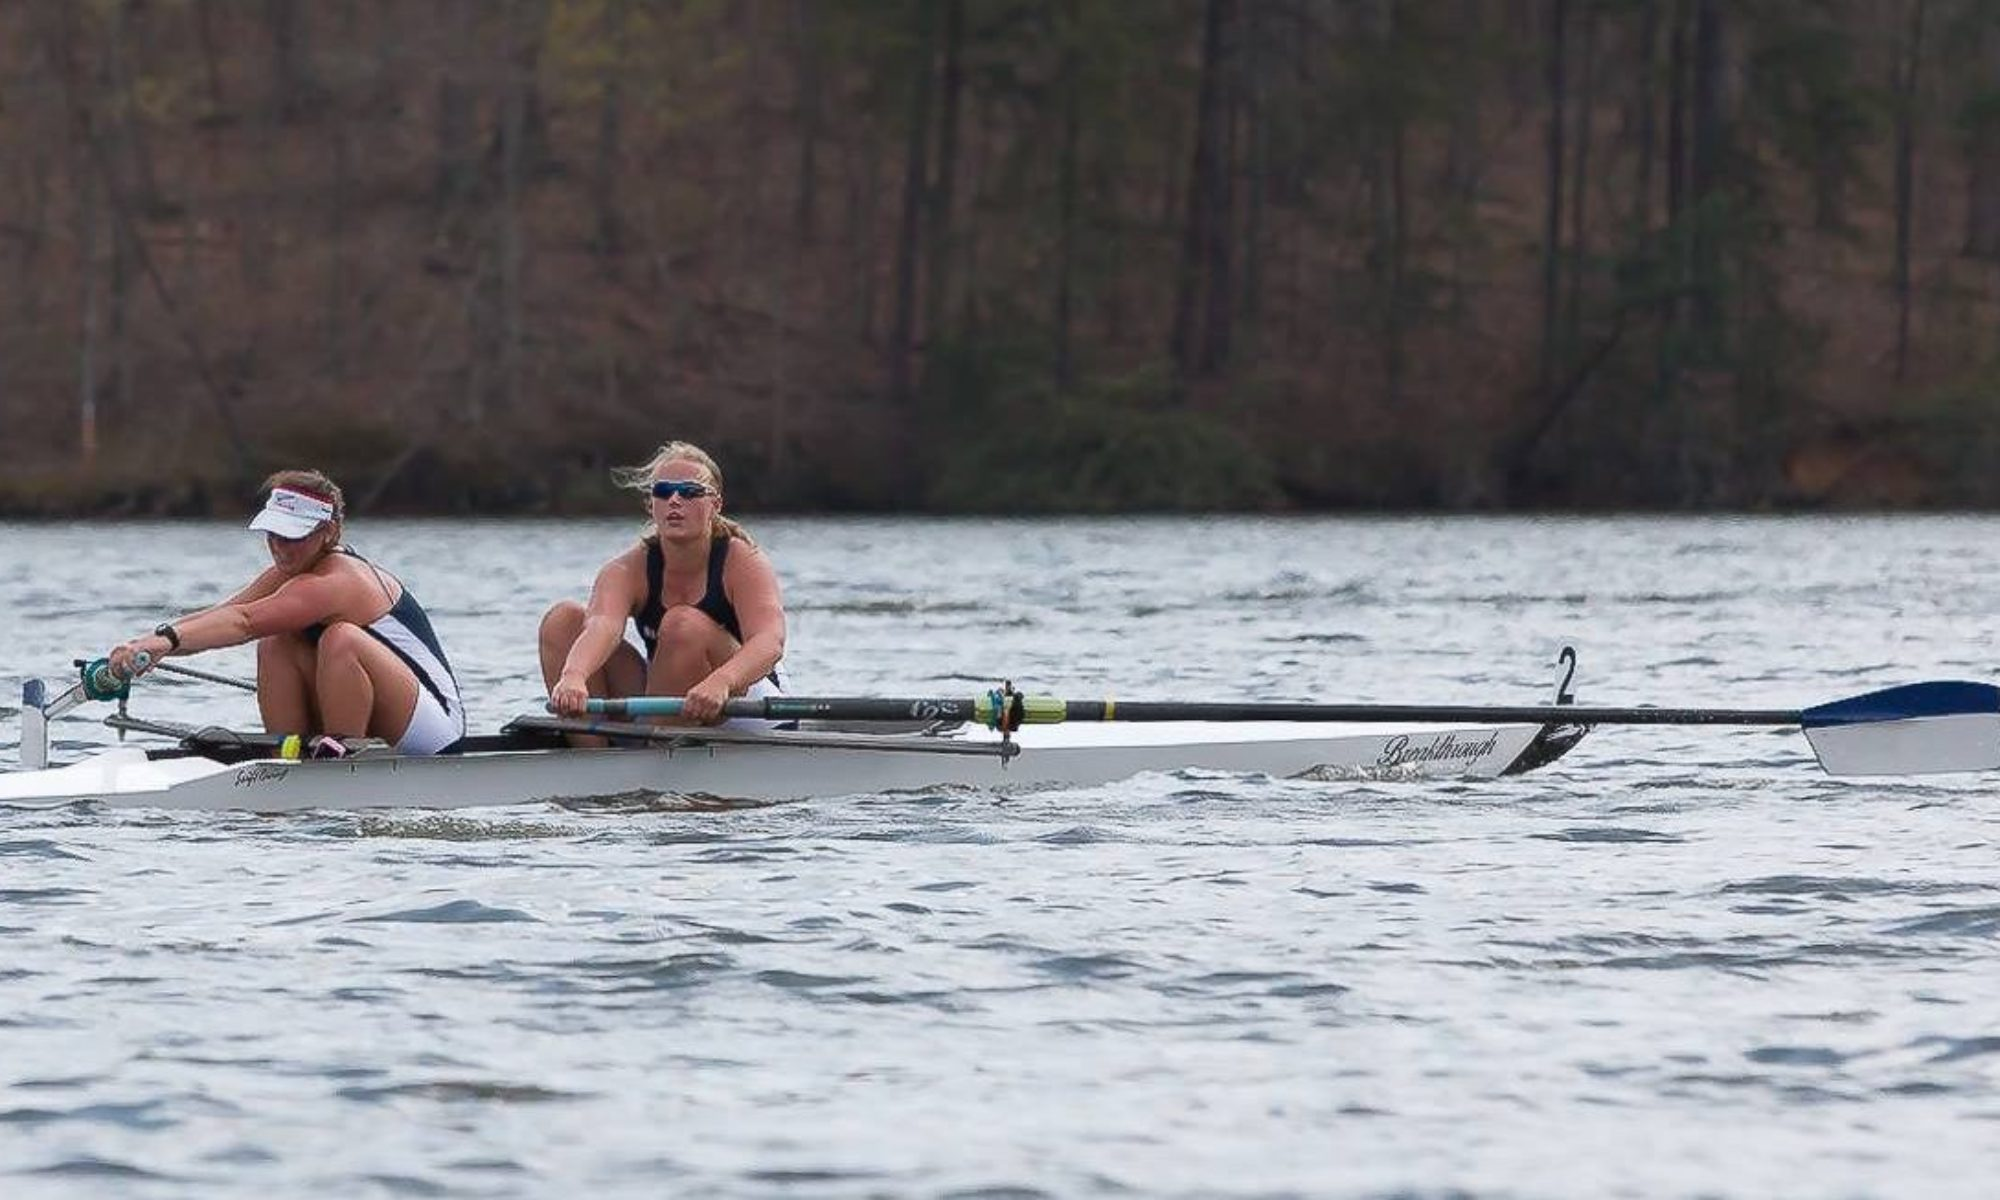 High Point Rowing Club | North Carolina's Center for Rowing & Boat